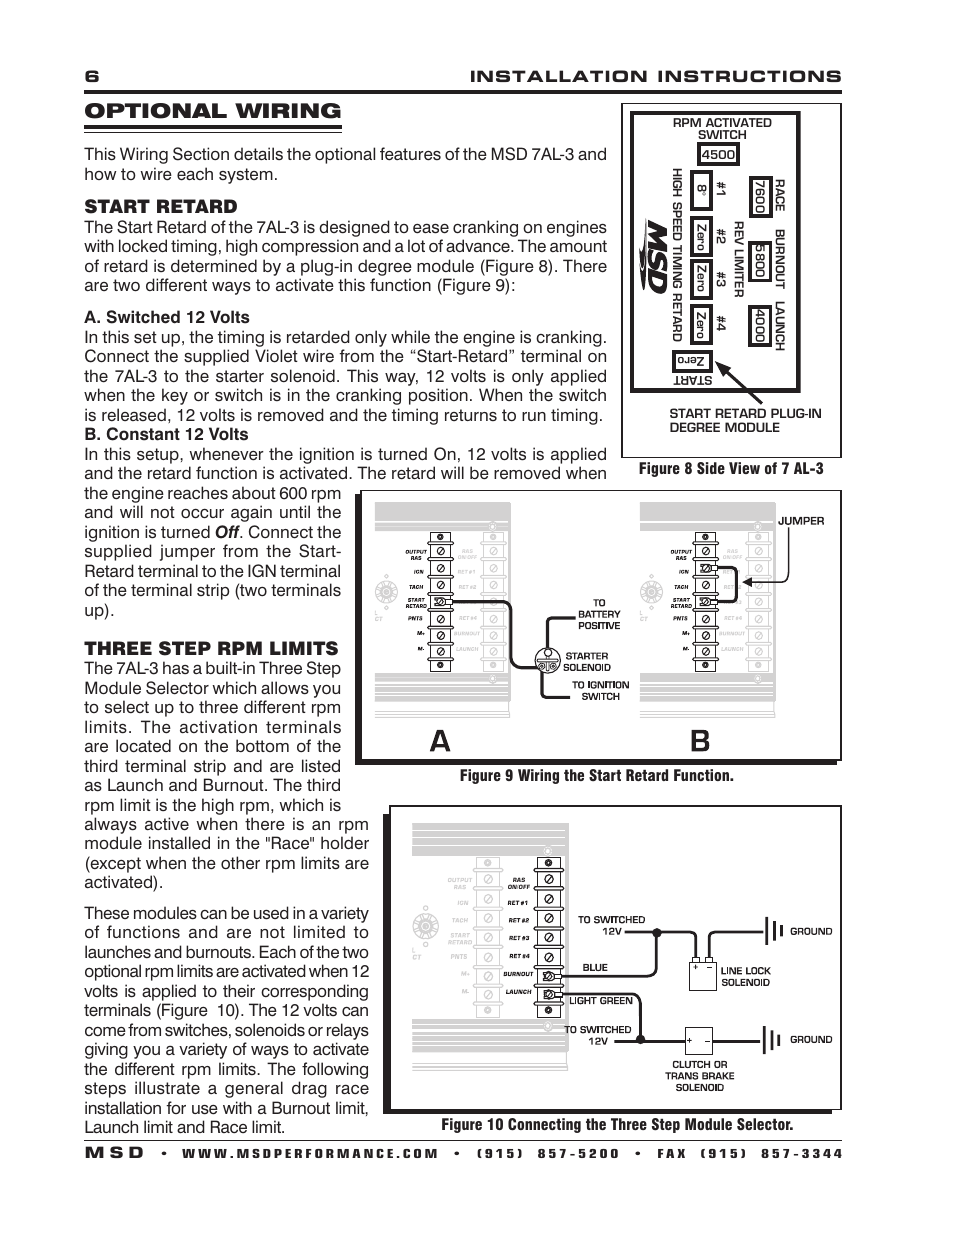 Fancy 22re Msd 6a Wiring Diagram Image Collection - Electrical and ...